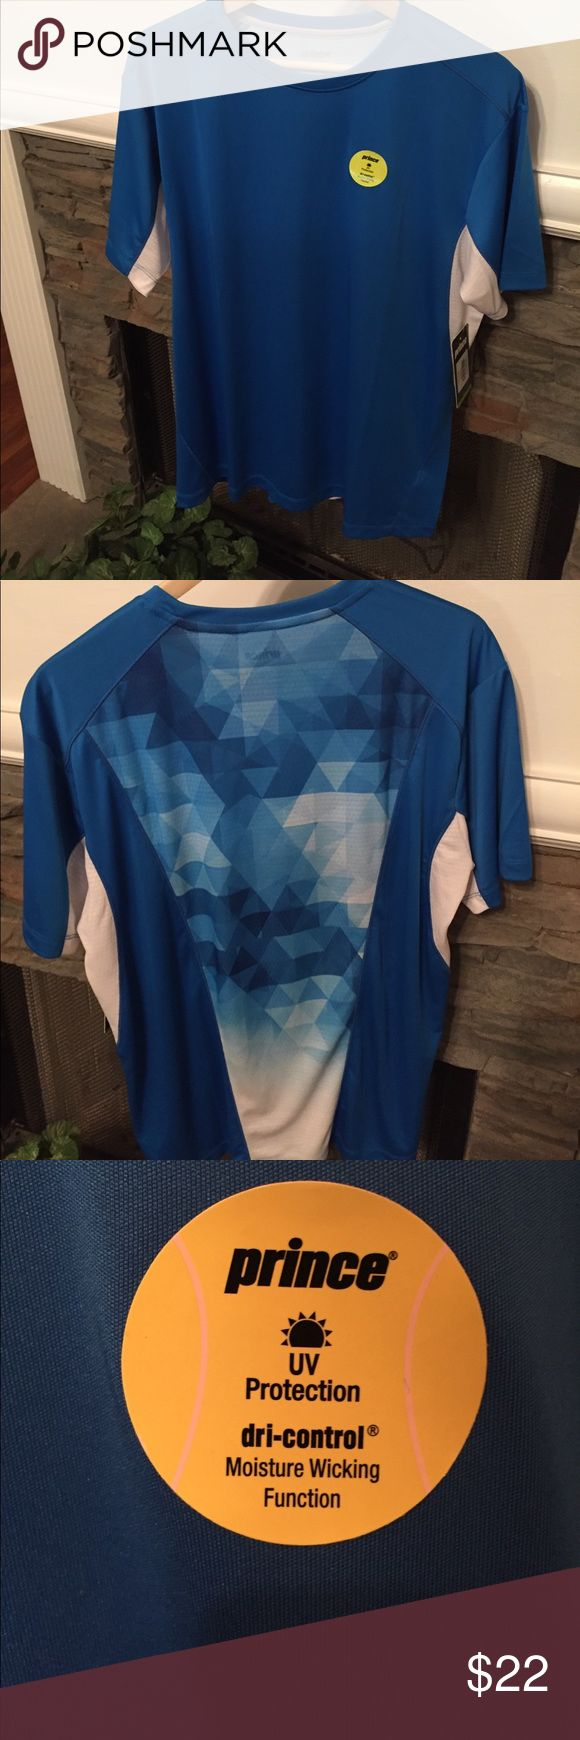 """Men's Prince Blue/White Sports shirt NWT Size L Men's Prince sports shirt. UV protection, dri-control moisture wicking function, size L, blue/white, short sleeves, 29 1/2"""" L Prince Shirts"""